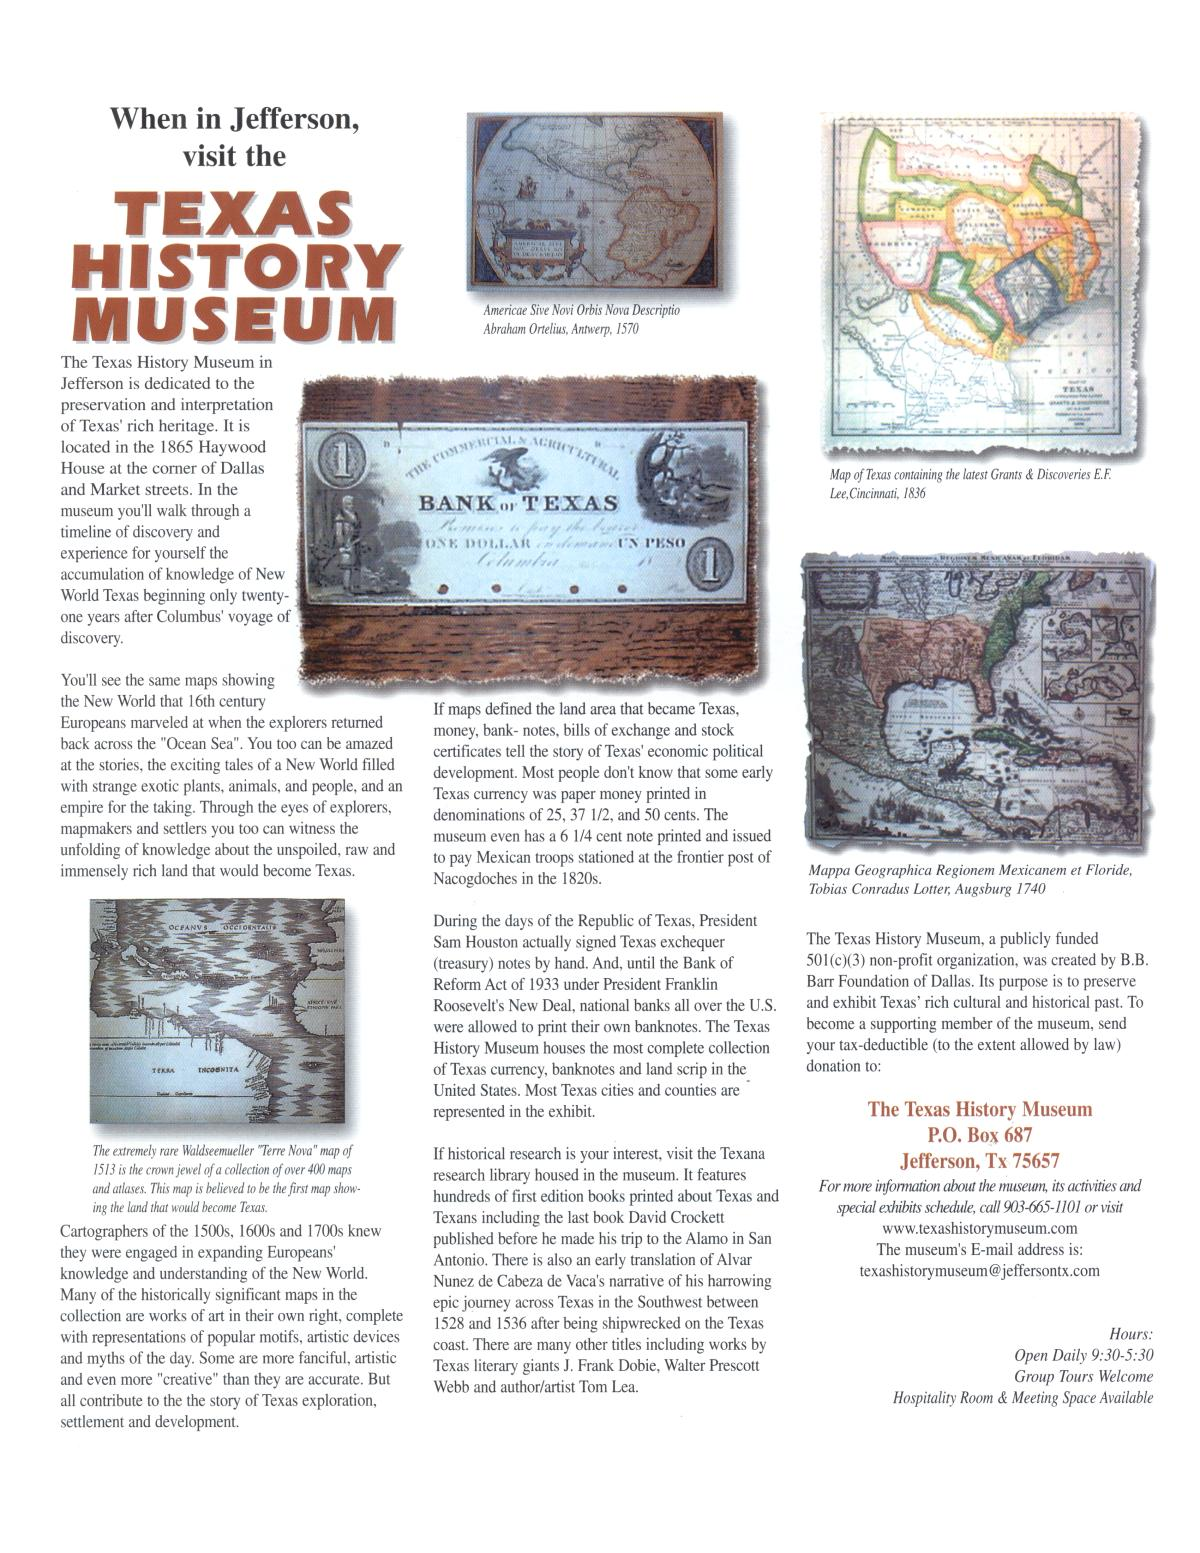 Texas Heritage, Volume 19, Number 1, Winter 2001                                                                                                      55